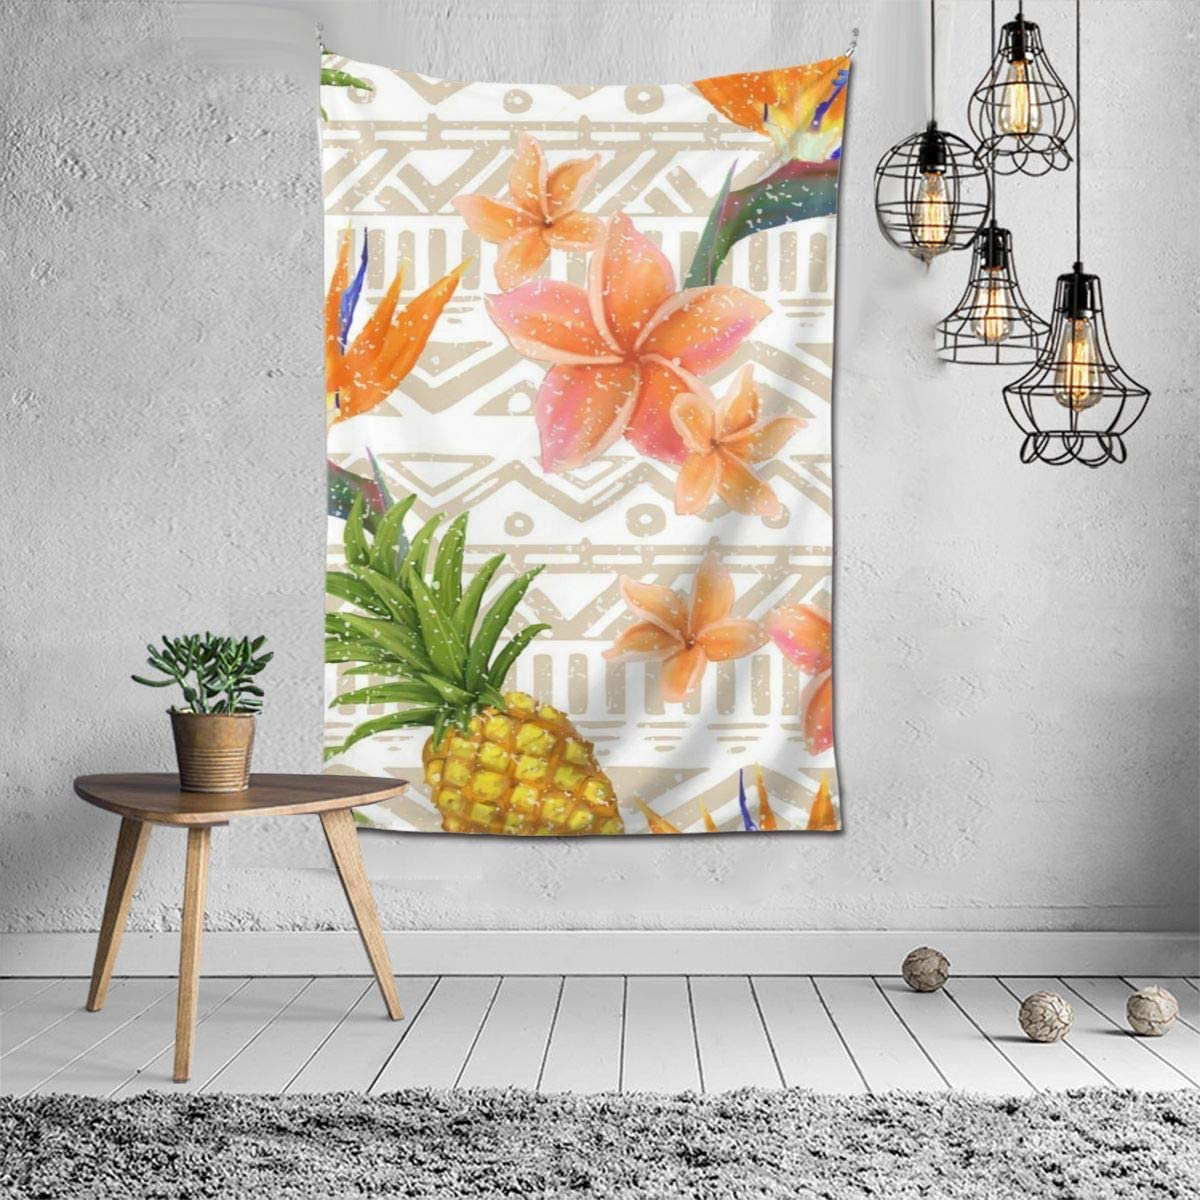 IRKKW81&c2 Durable Pineapples and Flowers Tapestry Wall Tapestry Home Decor for Bedroom Living Room College Dorm, (60 X 40 in)